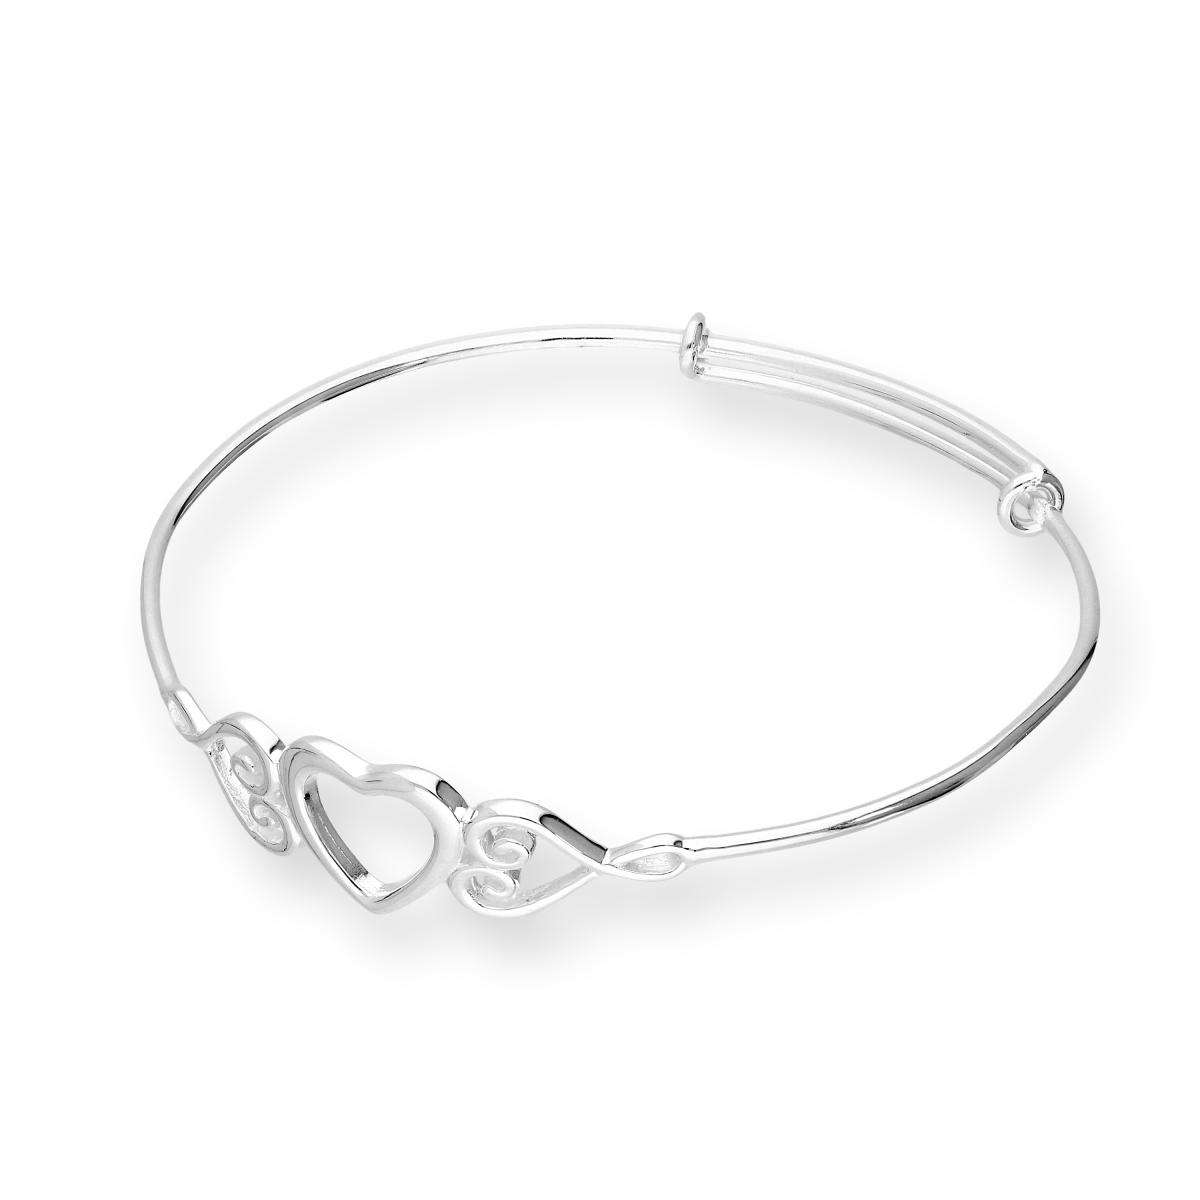 Alterative image for Sterling Silver Triple Open Heart Childs Adjustable Bangle